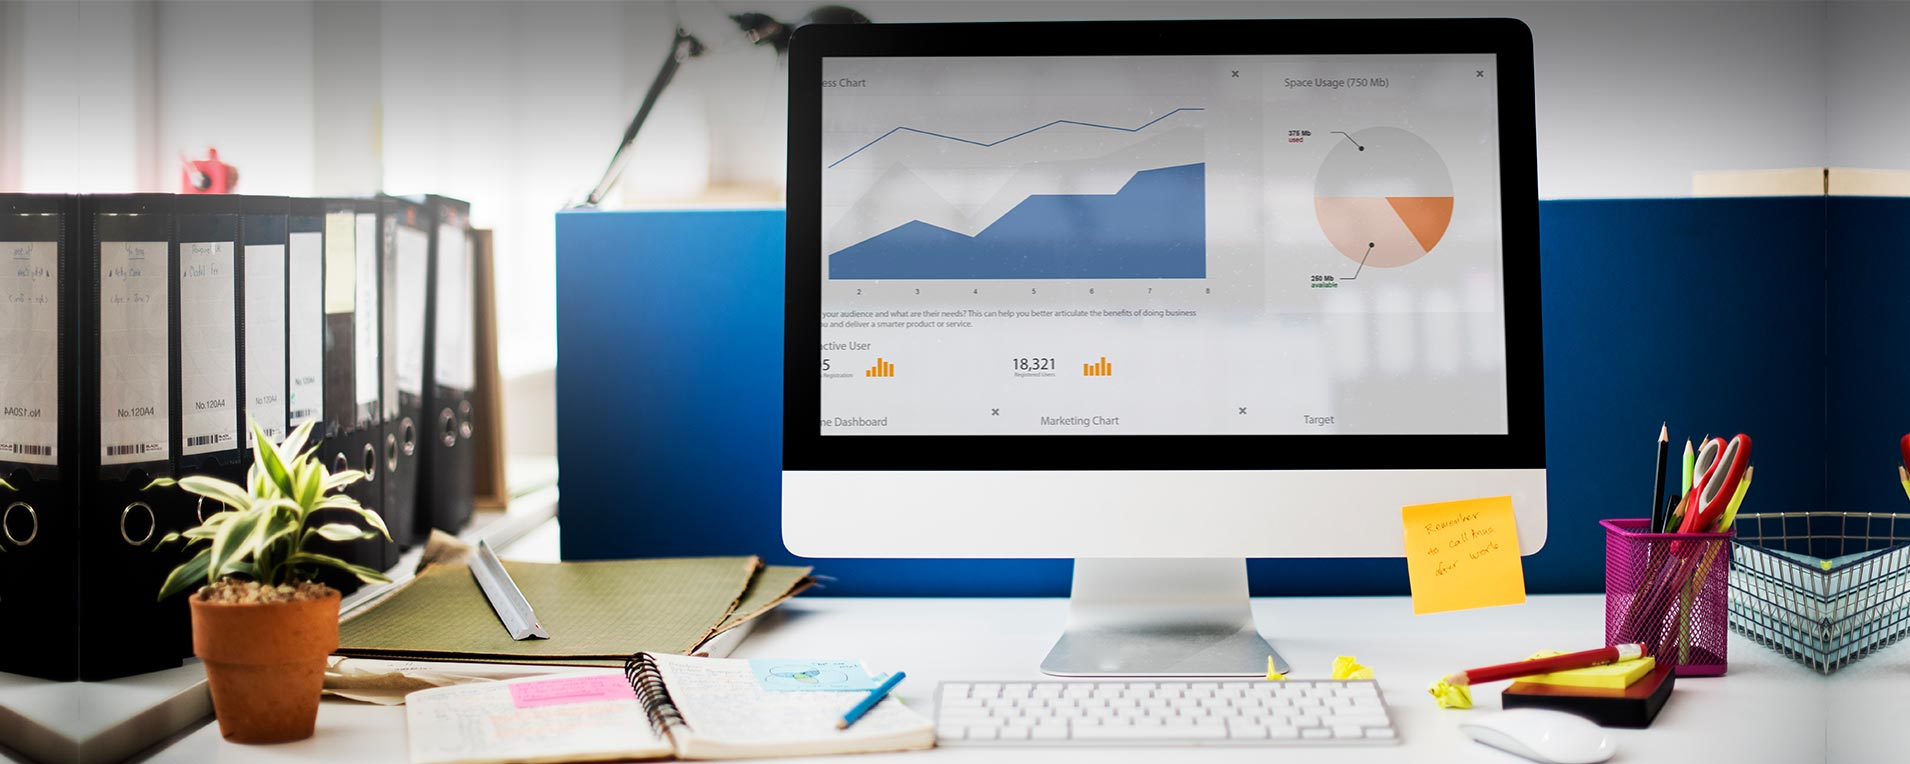 Are your dashboards displaying the right metrics?